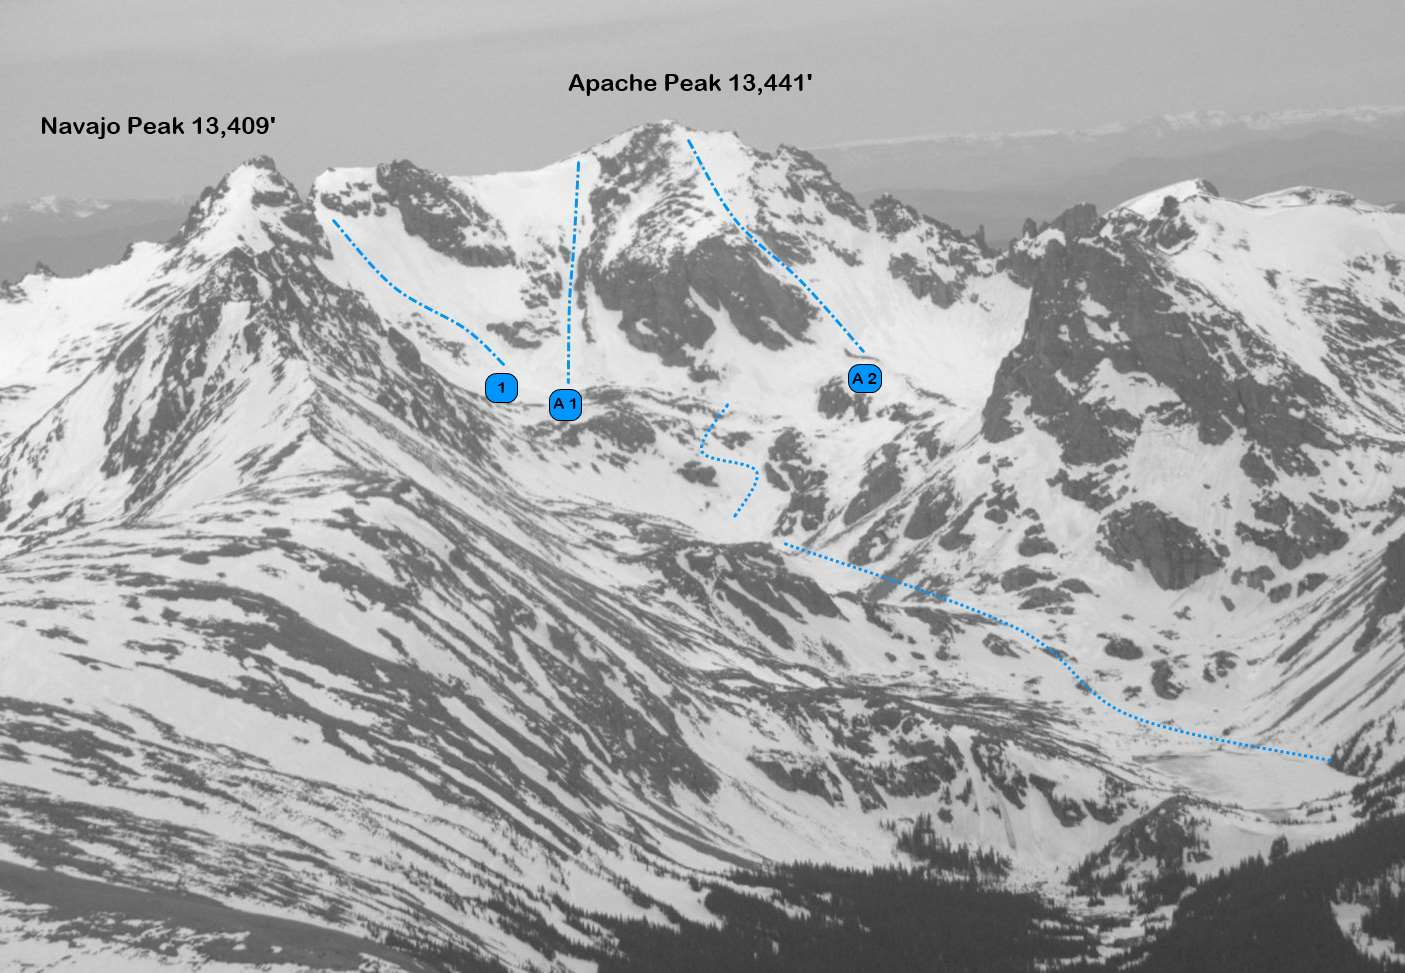 Navajo Peak and Apache Peak from the east. (A1 and 2 are routes on Apache) Photo: Rob Writz